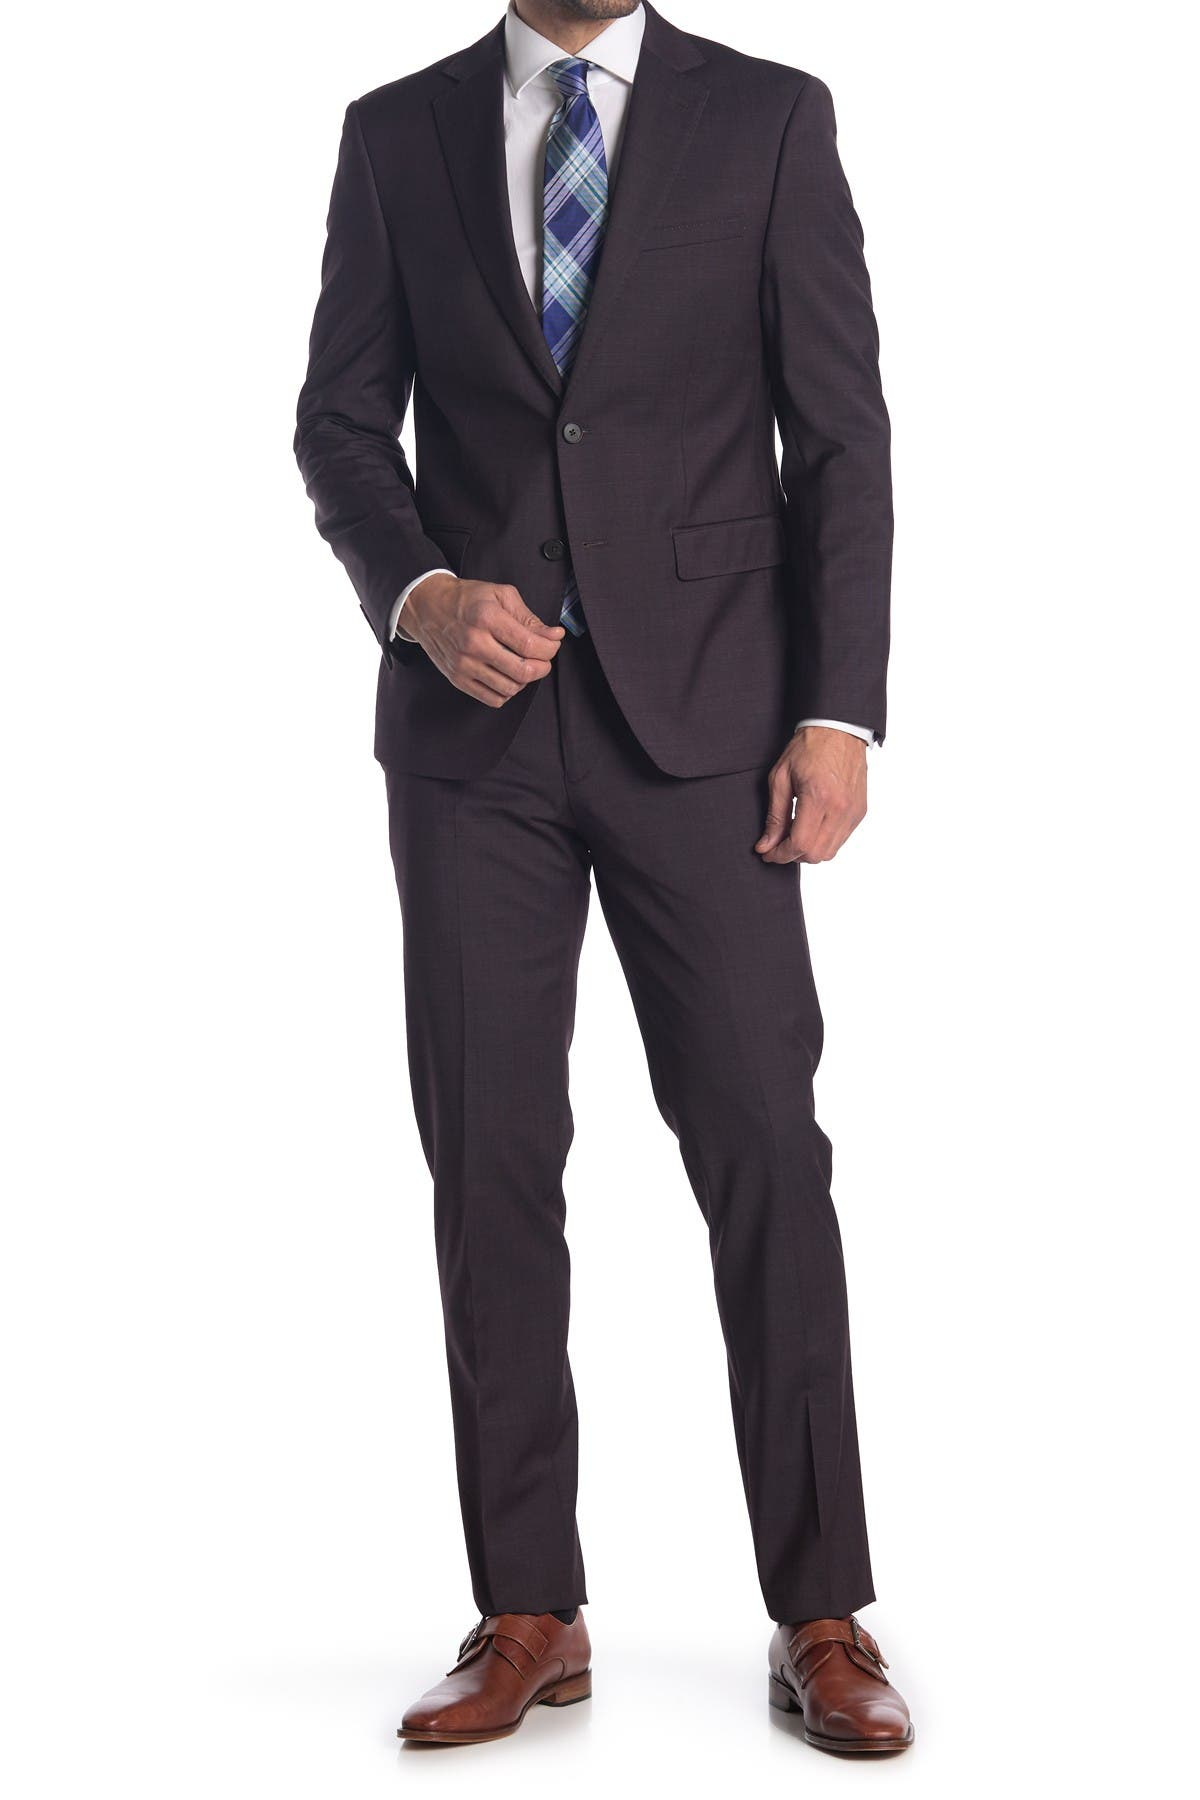 Image of Calvin Klein Burgundy Two Button Notch Lapel Extra Slim Fit Suit